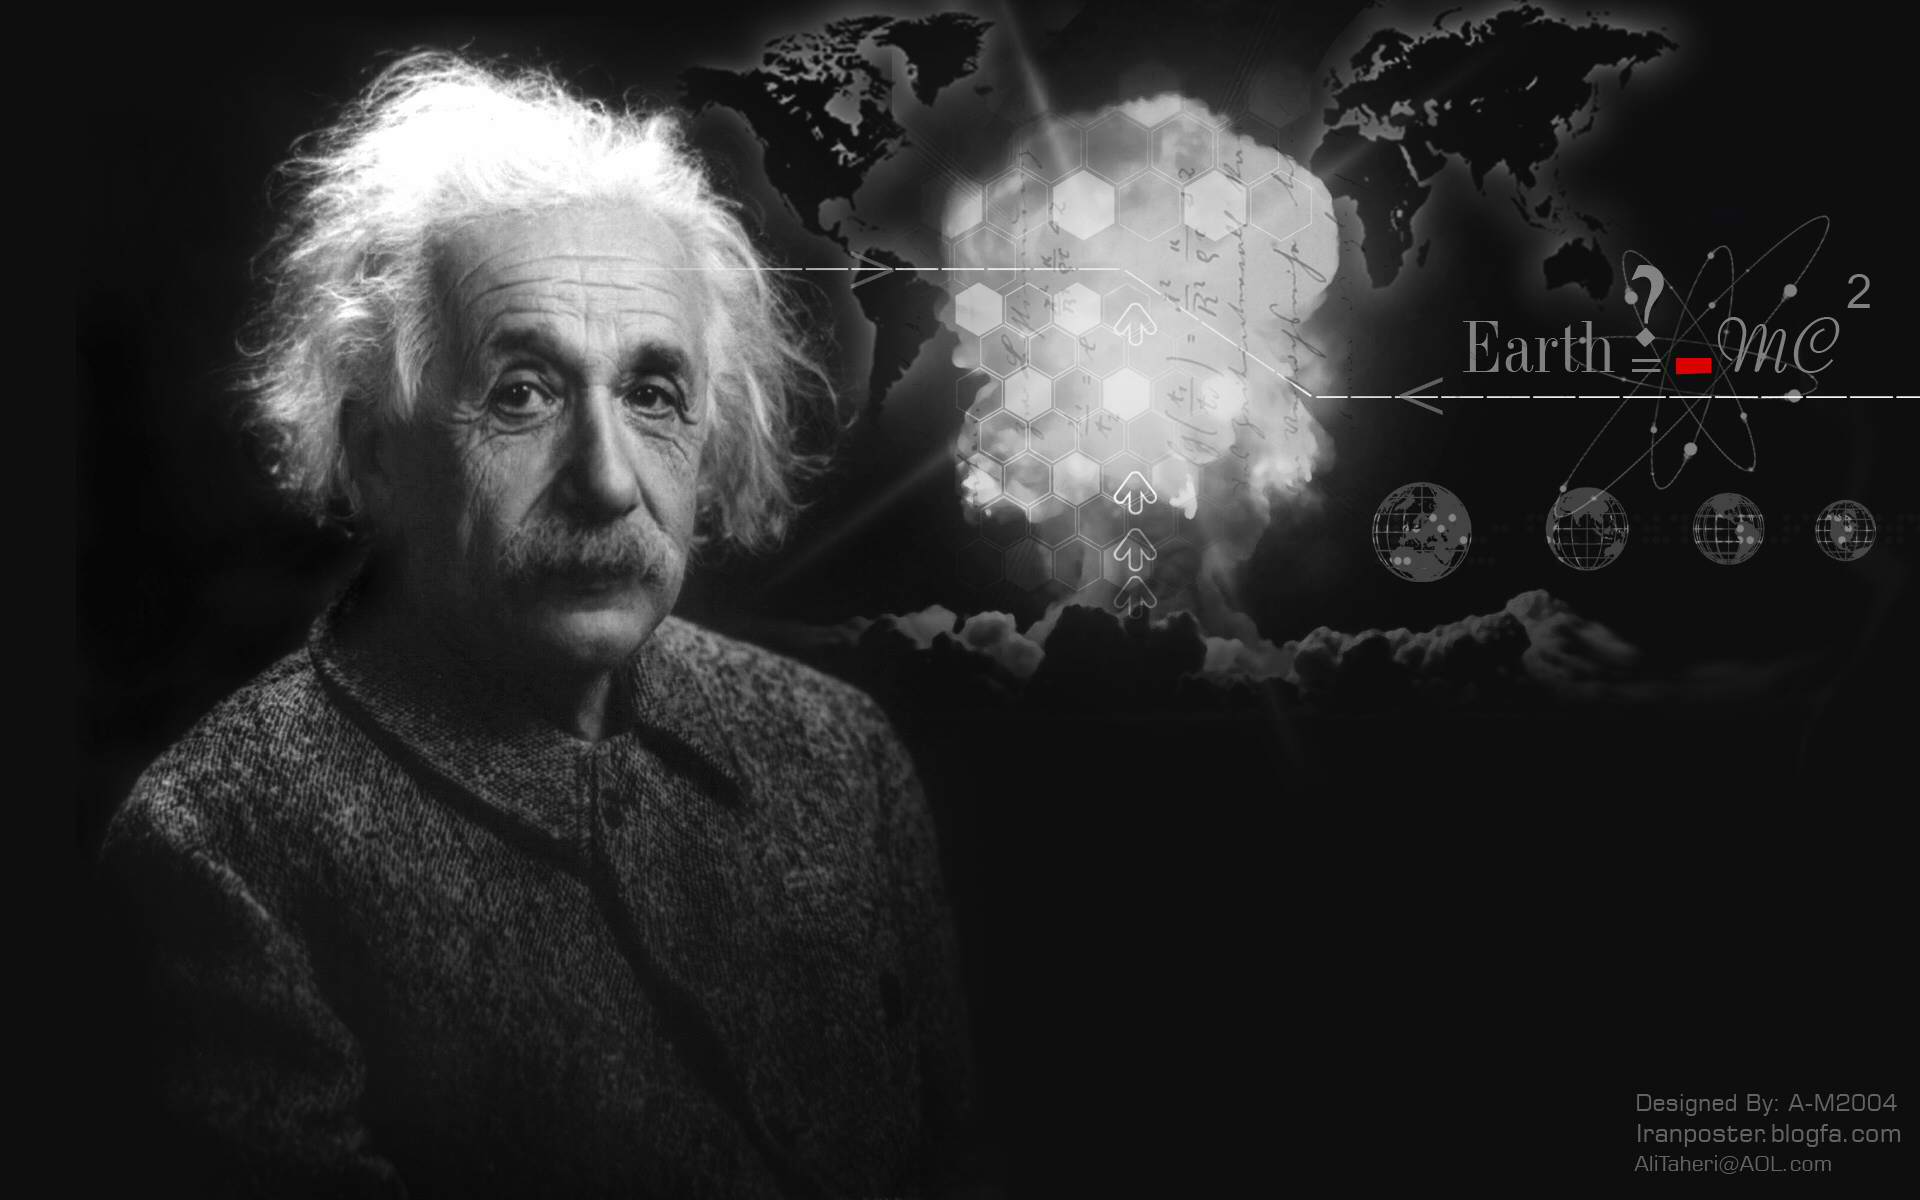 Albert einstein wallpapers high quality download free - Albert einstein hd images ...